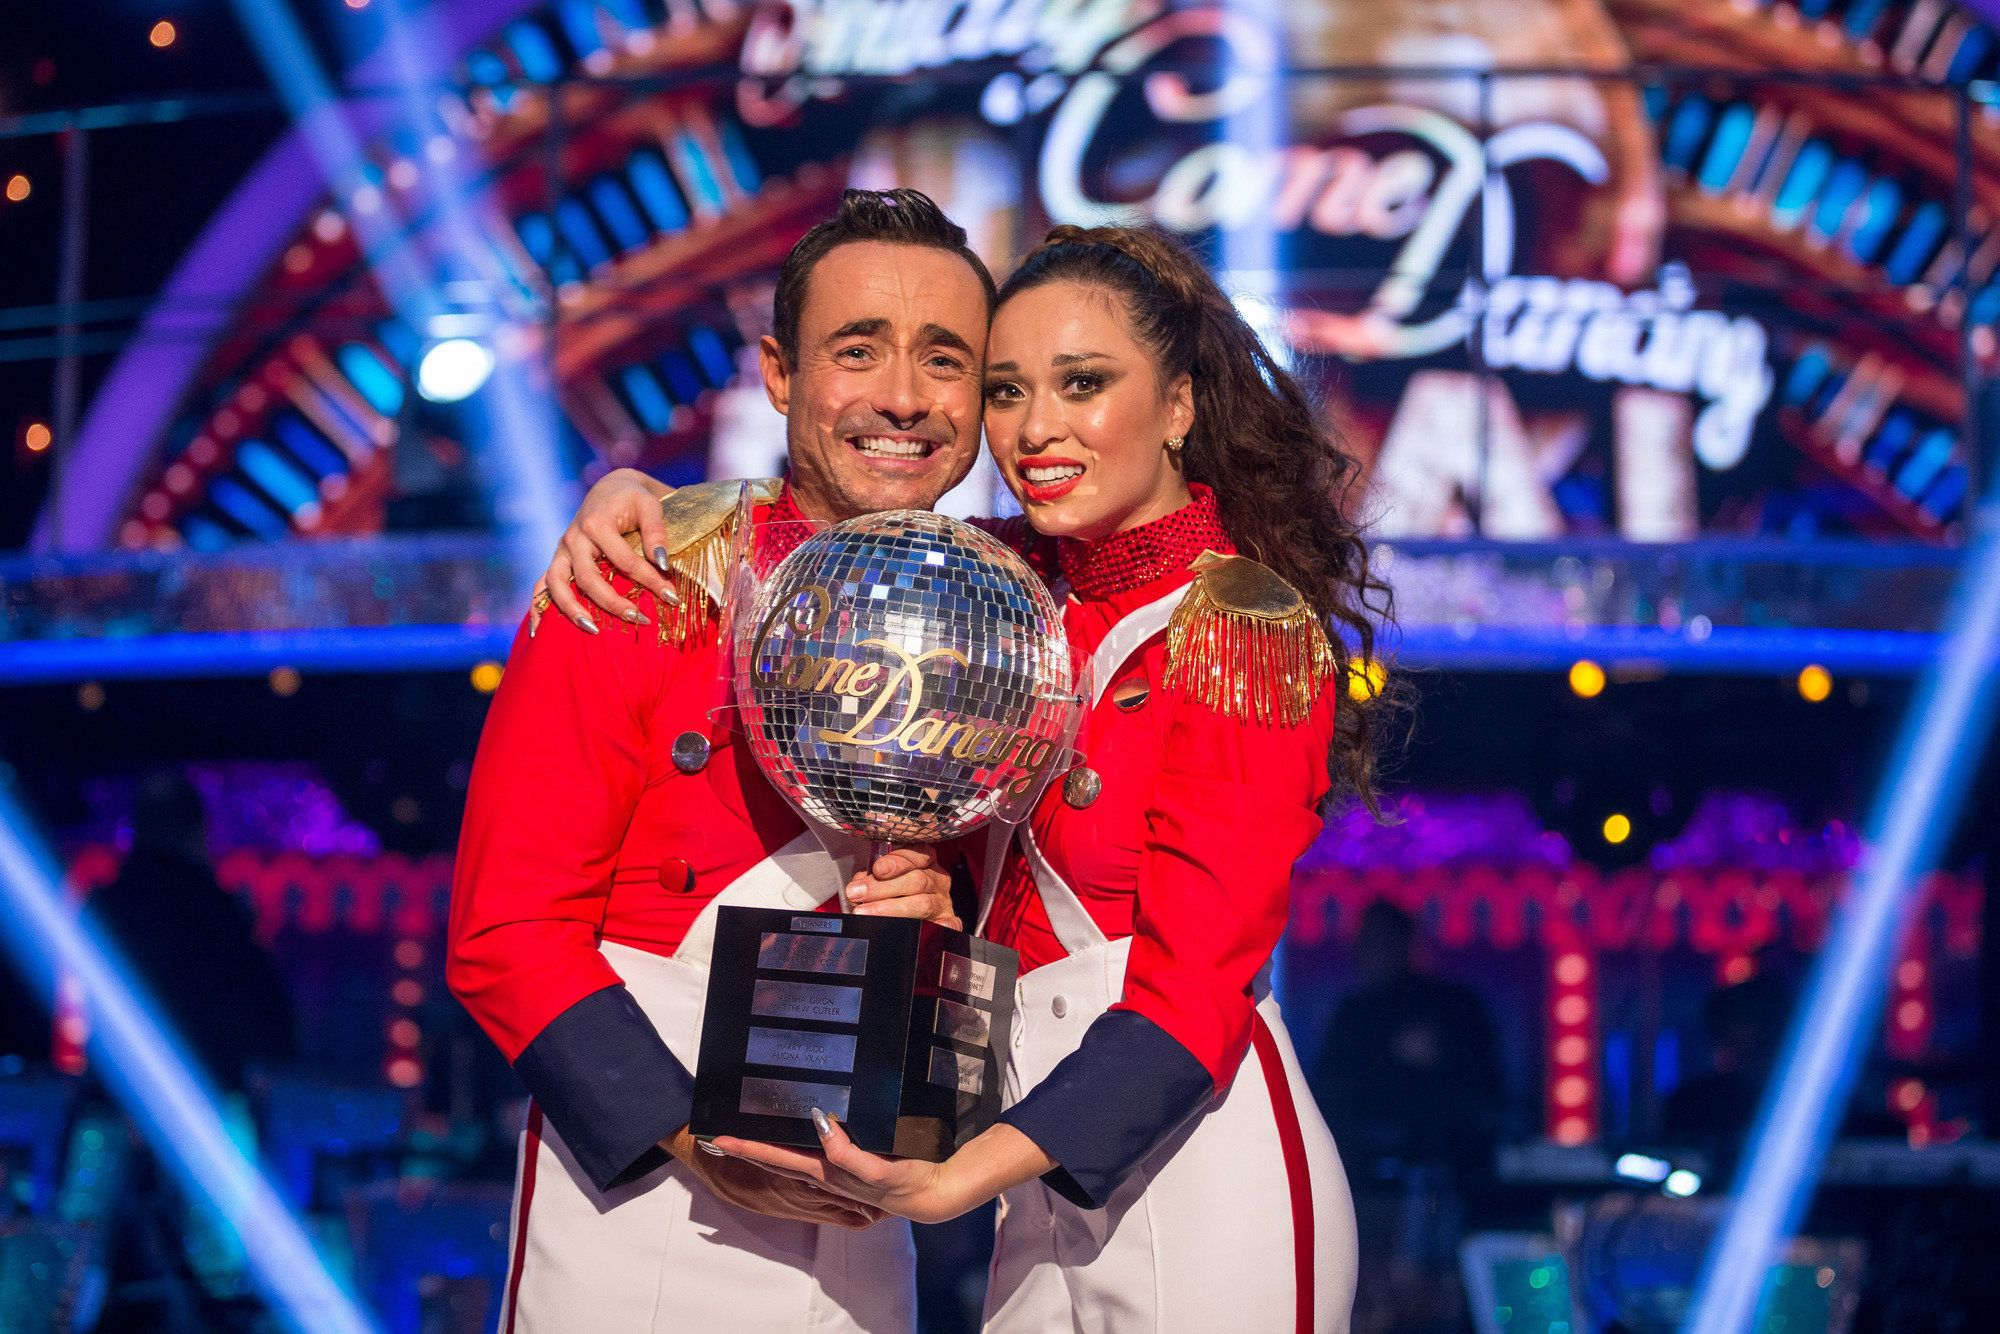 Joe McFadden 'Unemployed But Hopeful' Following £100K 'Strictly'